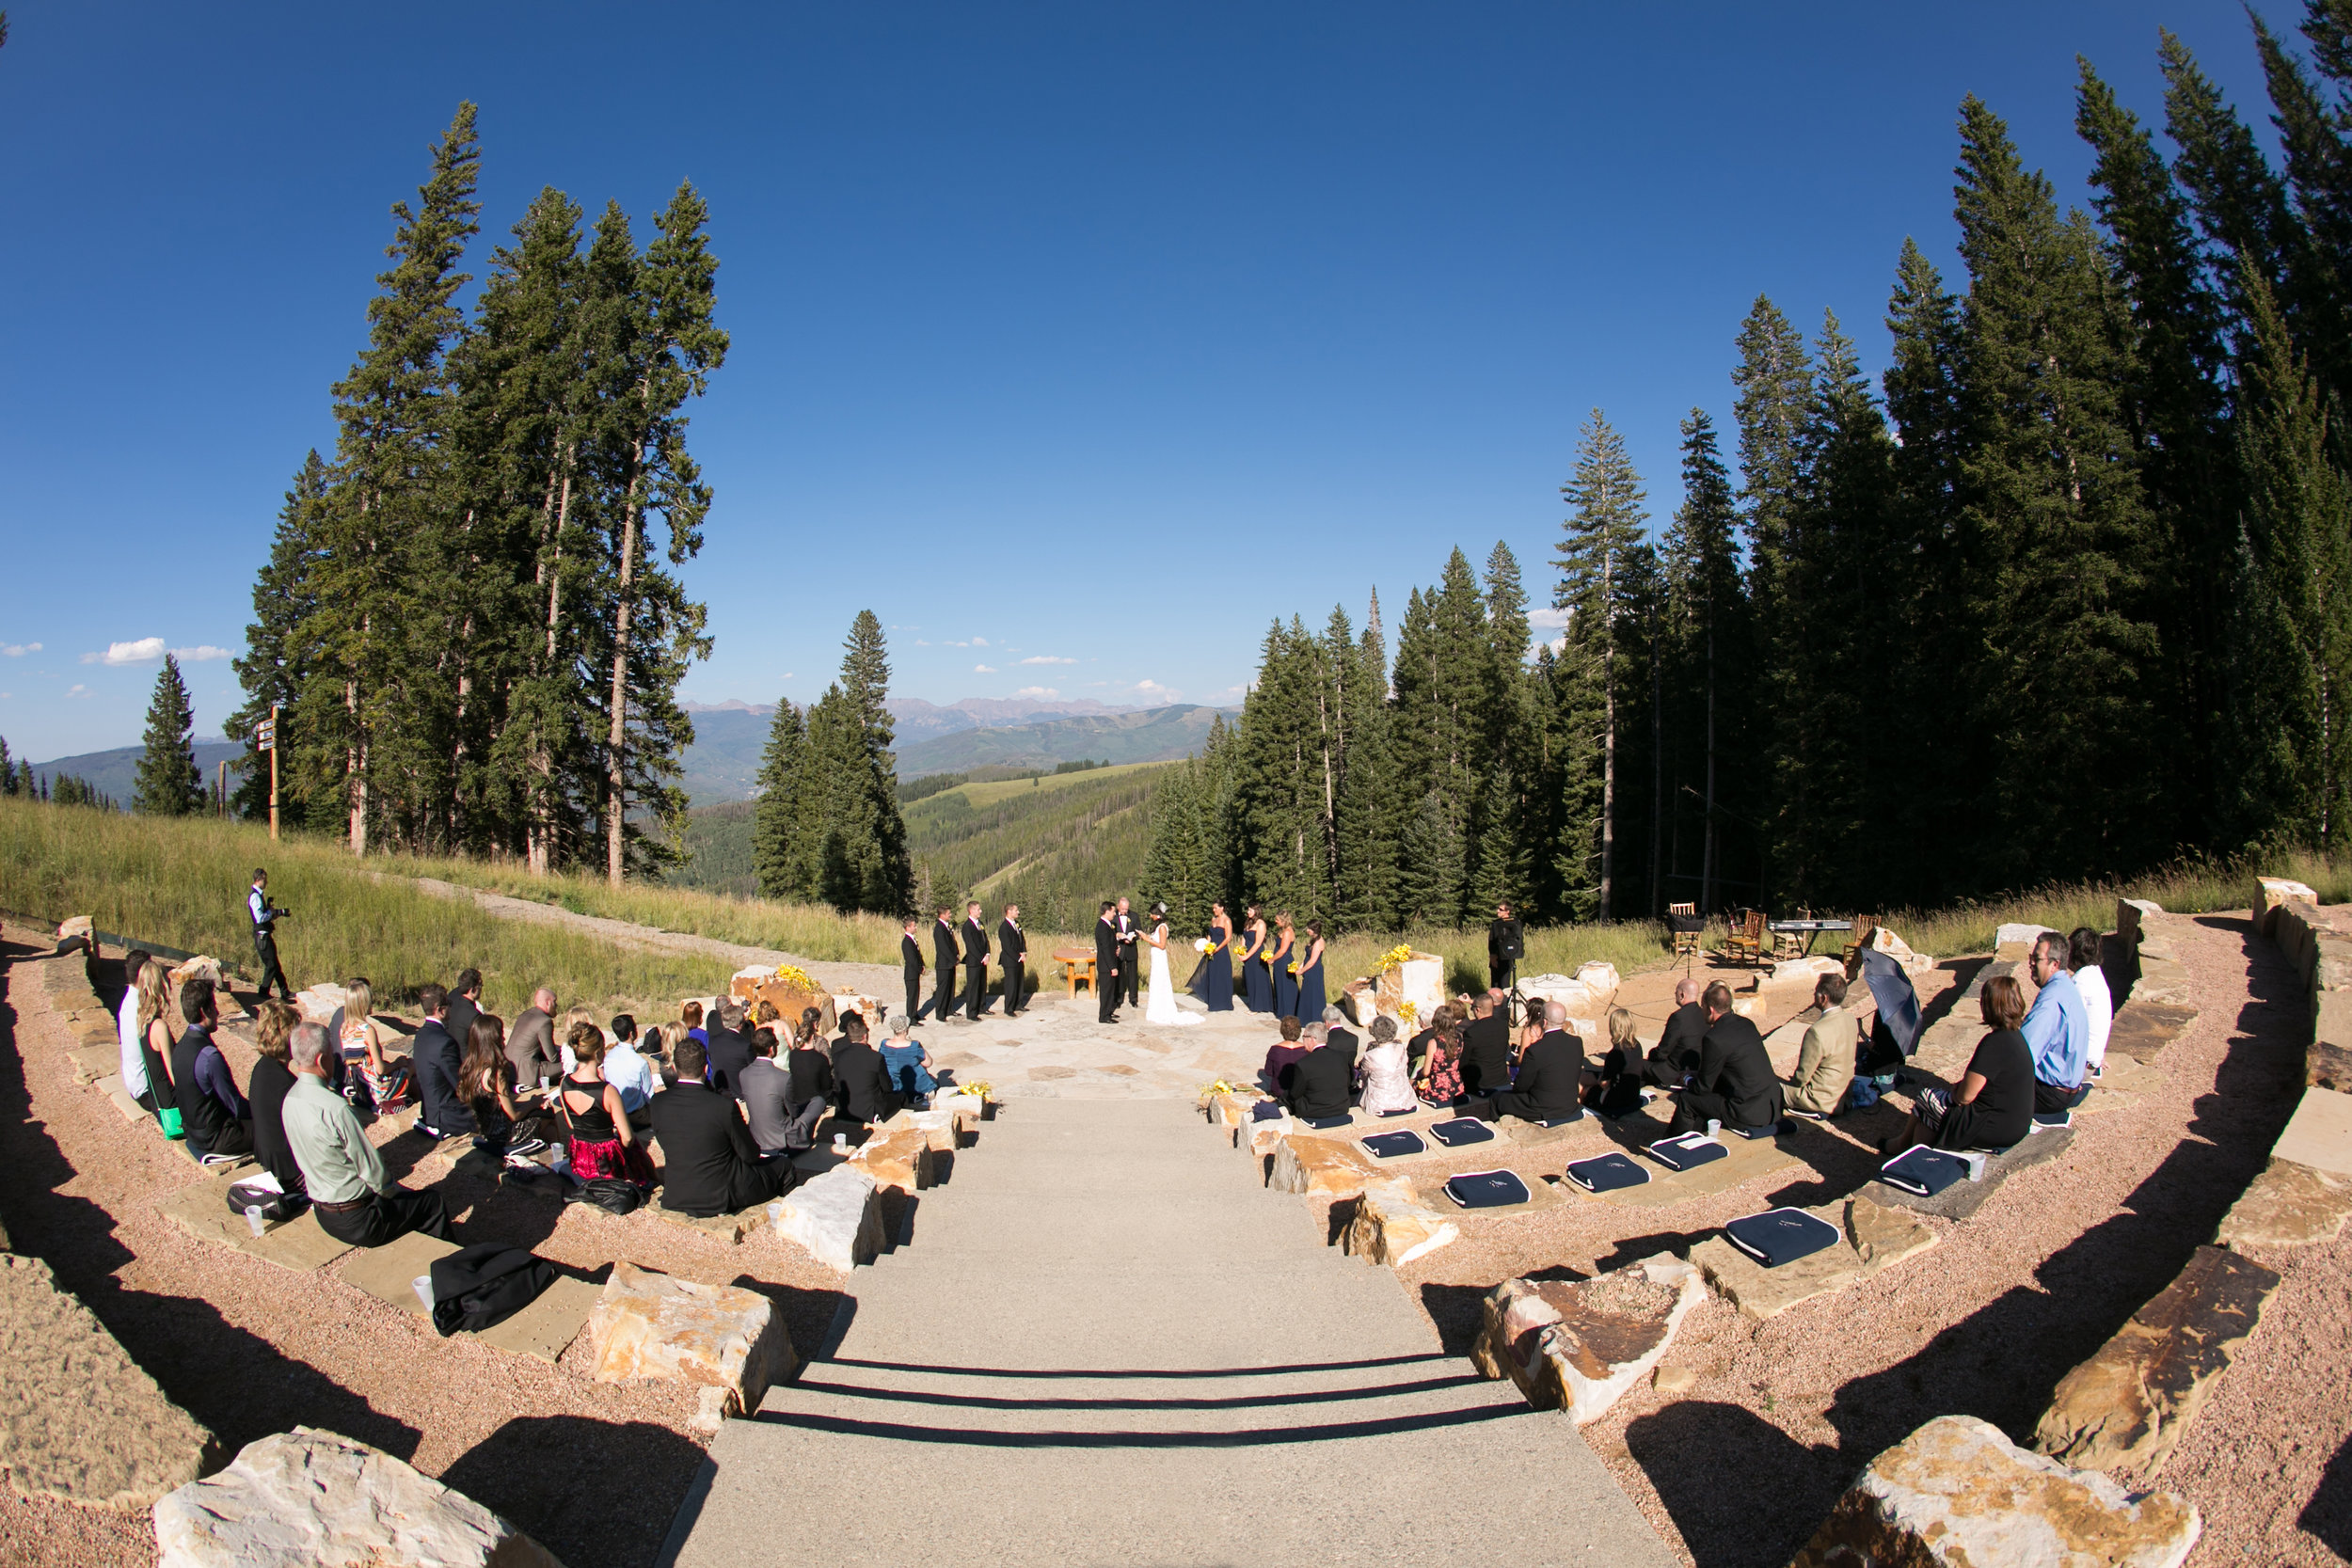 Beaver_Creek_Wedding_Deck_rates_axelphoto.jpg